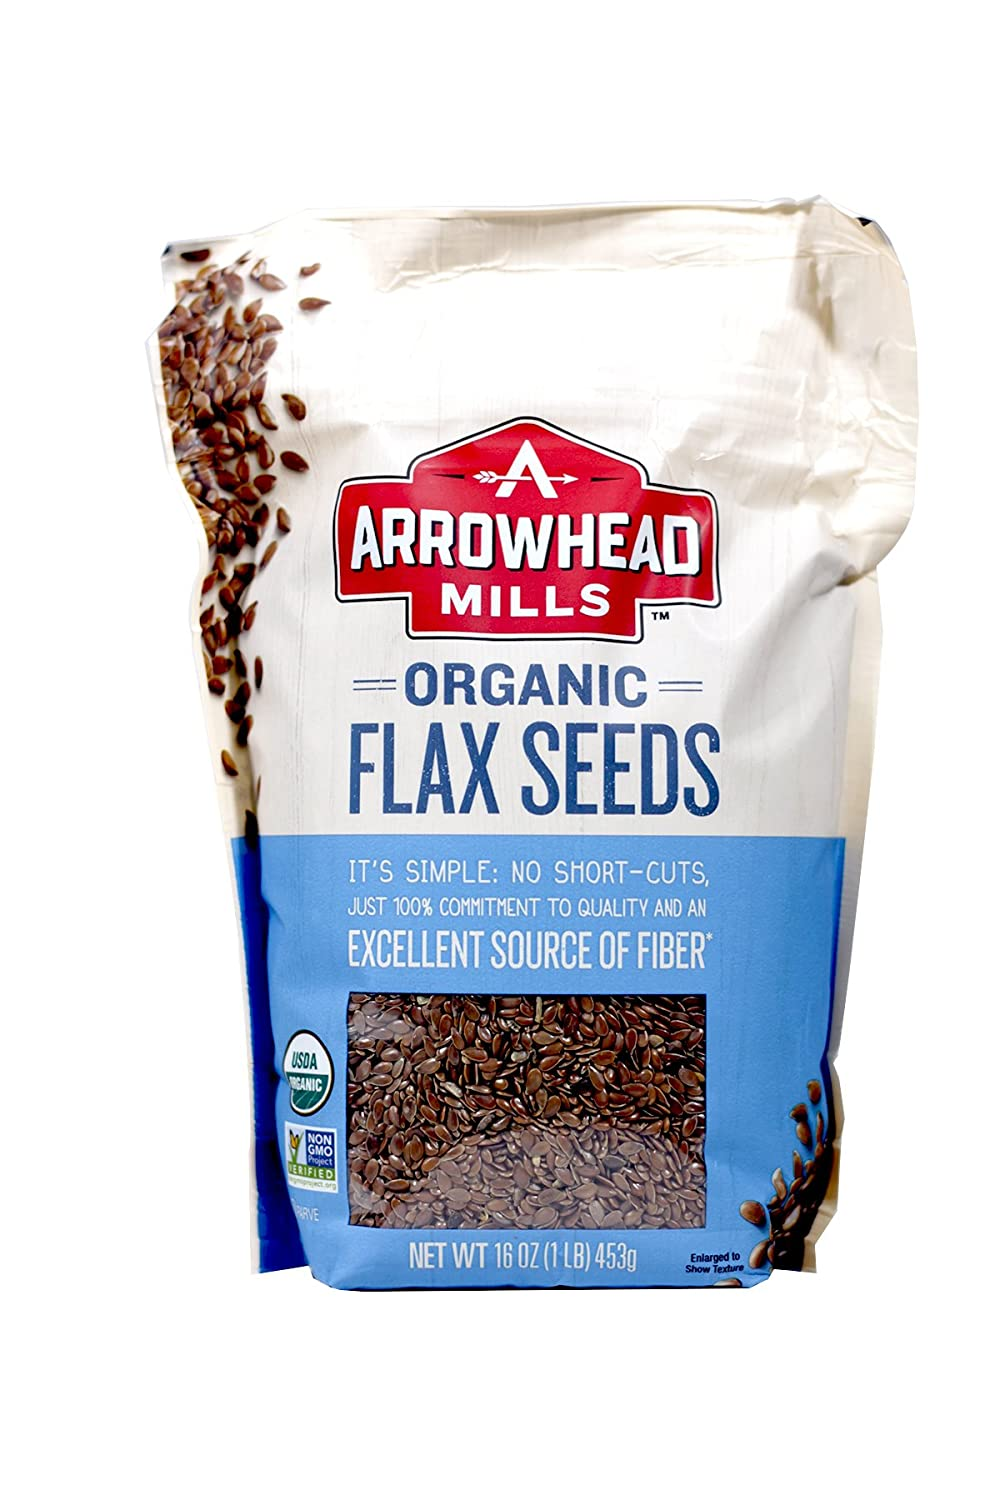 Bulk flax seed for crafts - Amazon Com Arrowhead Mills Organic Flax Seeds 1 Pound Bag Flaxseeds Spices And Herbs Grocery Gourmet Food